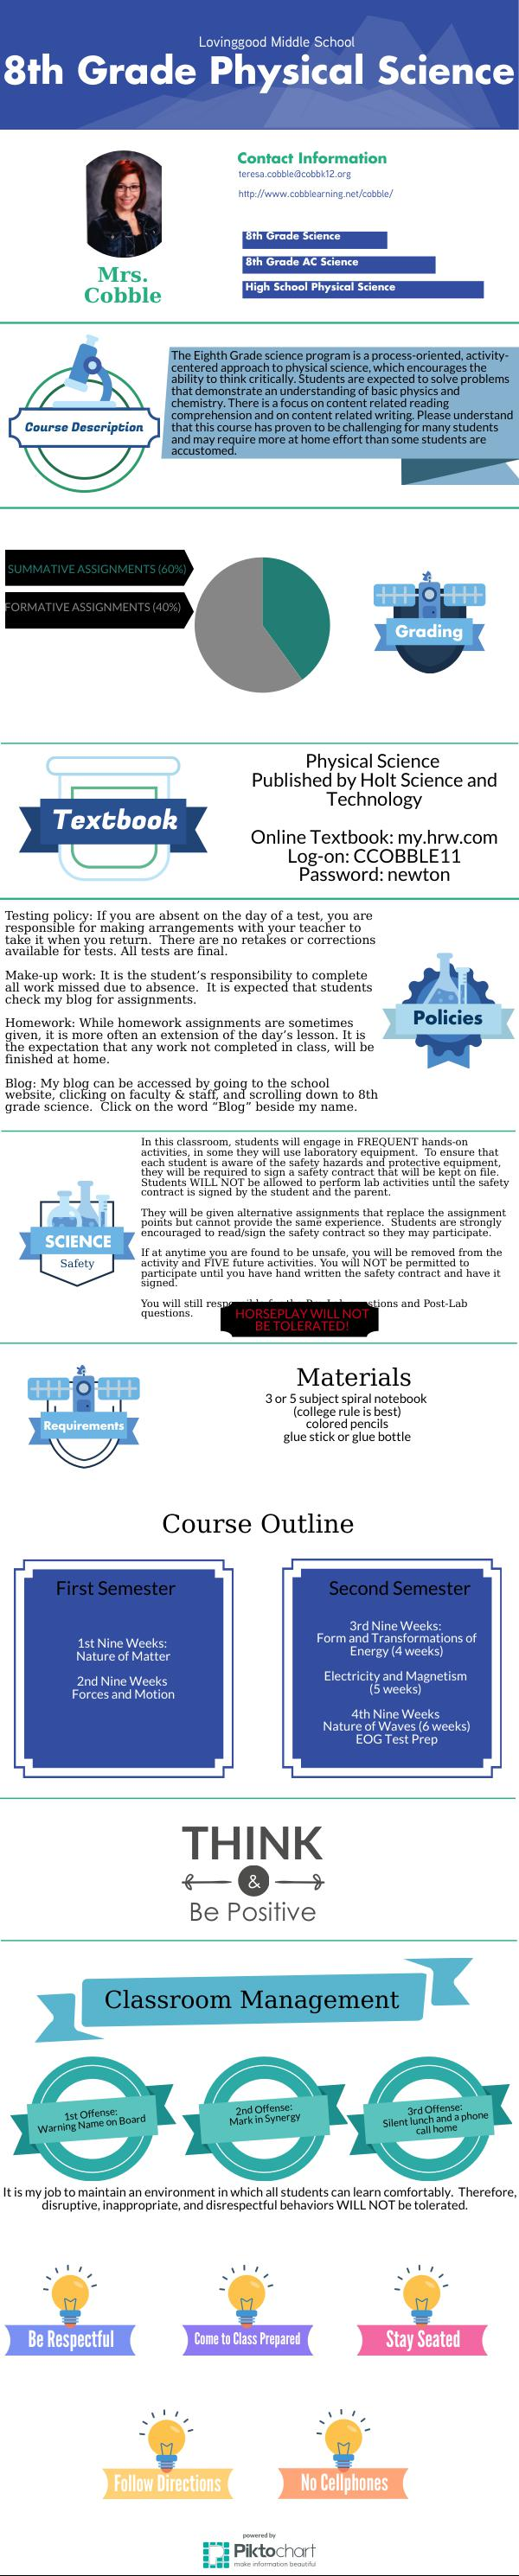 8th Grade Physical Science - Cobble | Piktochart ...